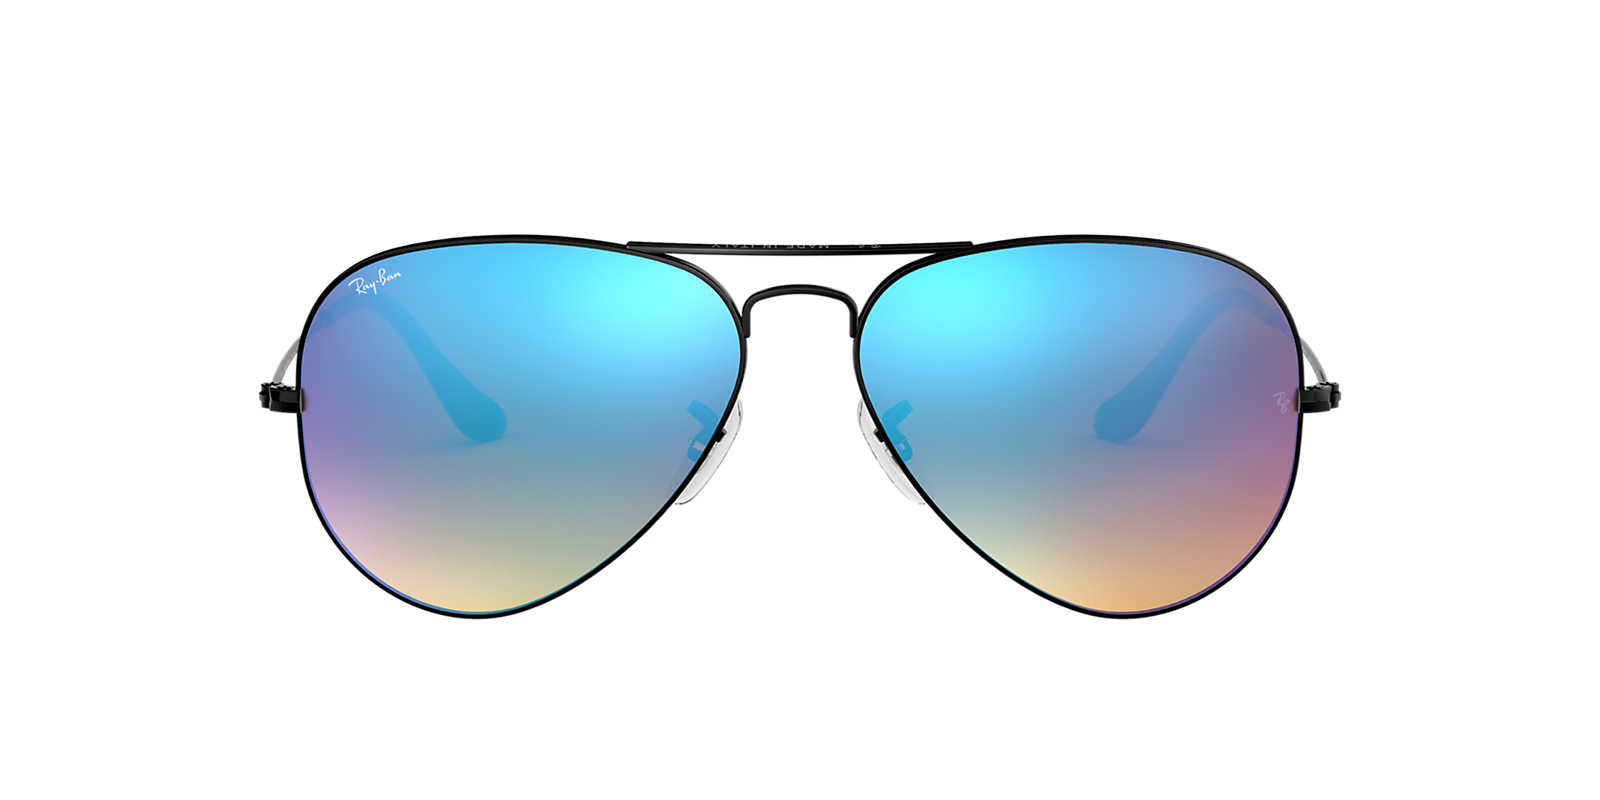 ray ban sunglasses blue aviator  Ray-Ban RB3025 58 ORIGINAL AVIATOR 58 Blue \u0026 Black Sunglasses ...